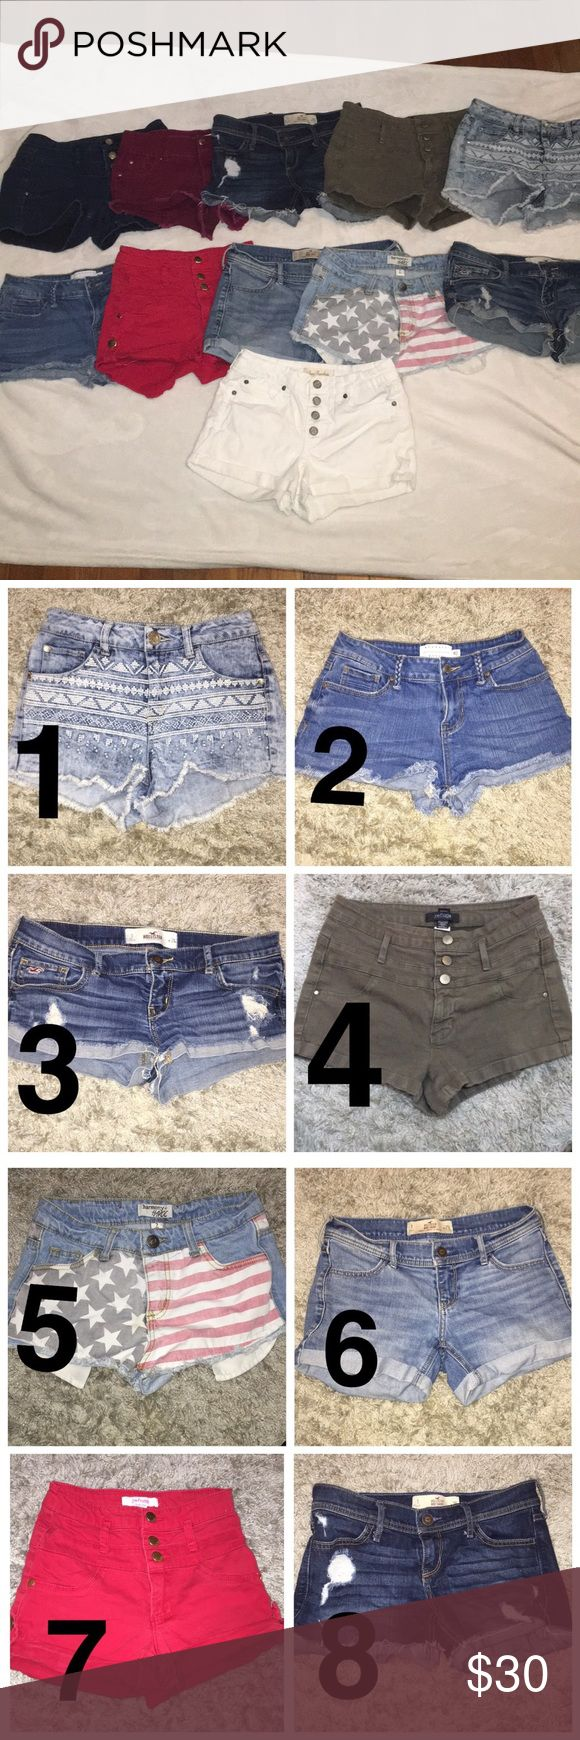 3 for $30 shorts Pick any three shorts you want and comment the assigned numbers for the shorts below !!💗 I will make a separate post for you.  If you wanna just buy the shorts separately there are already separate listings up.  Also if you want more information about the shorts and the sizes they are posted on their separate post on my account Shorts